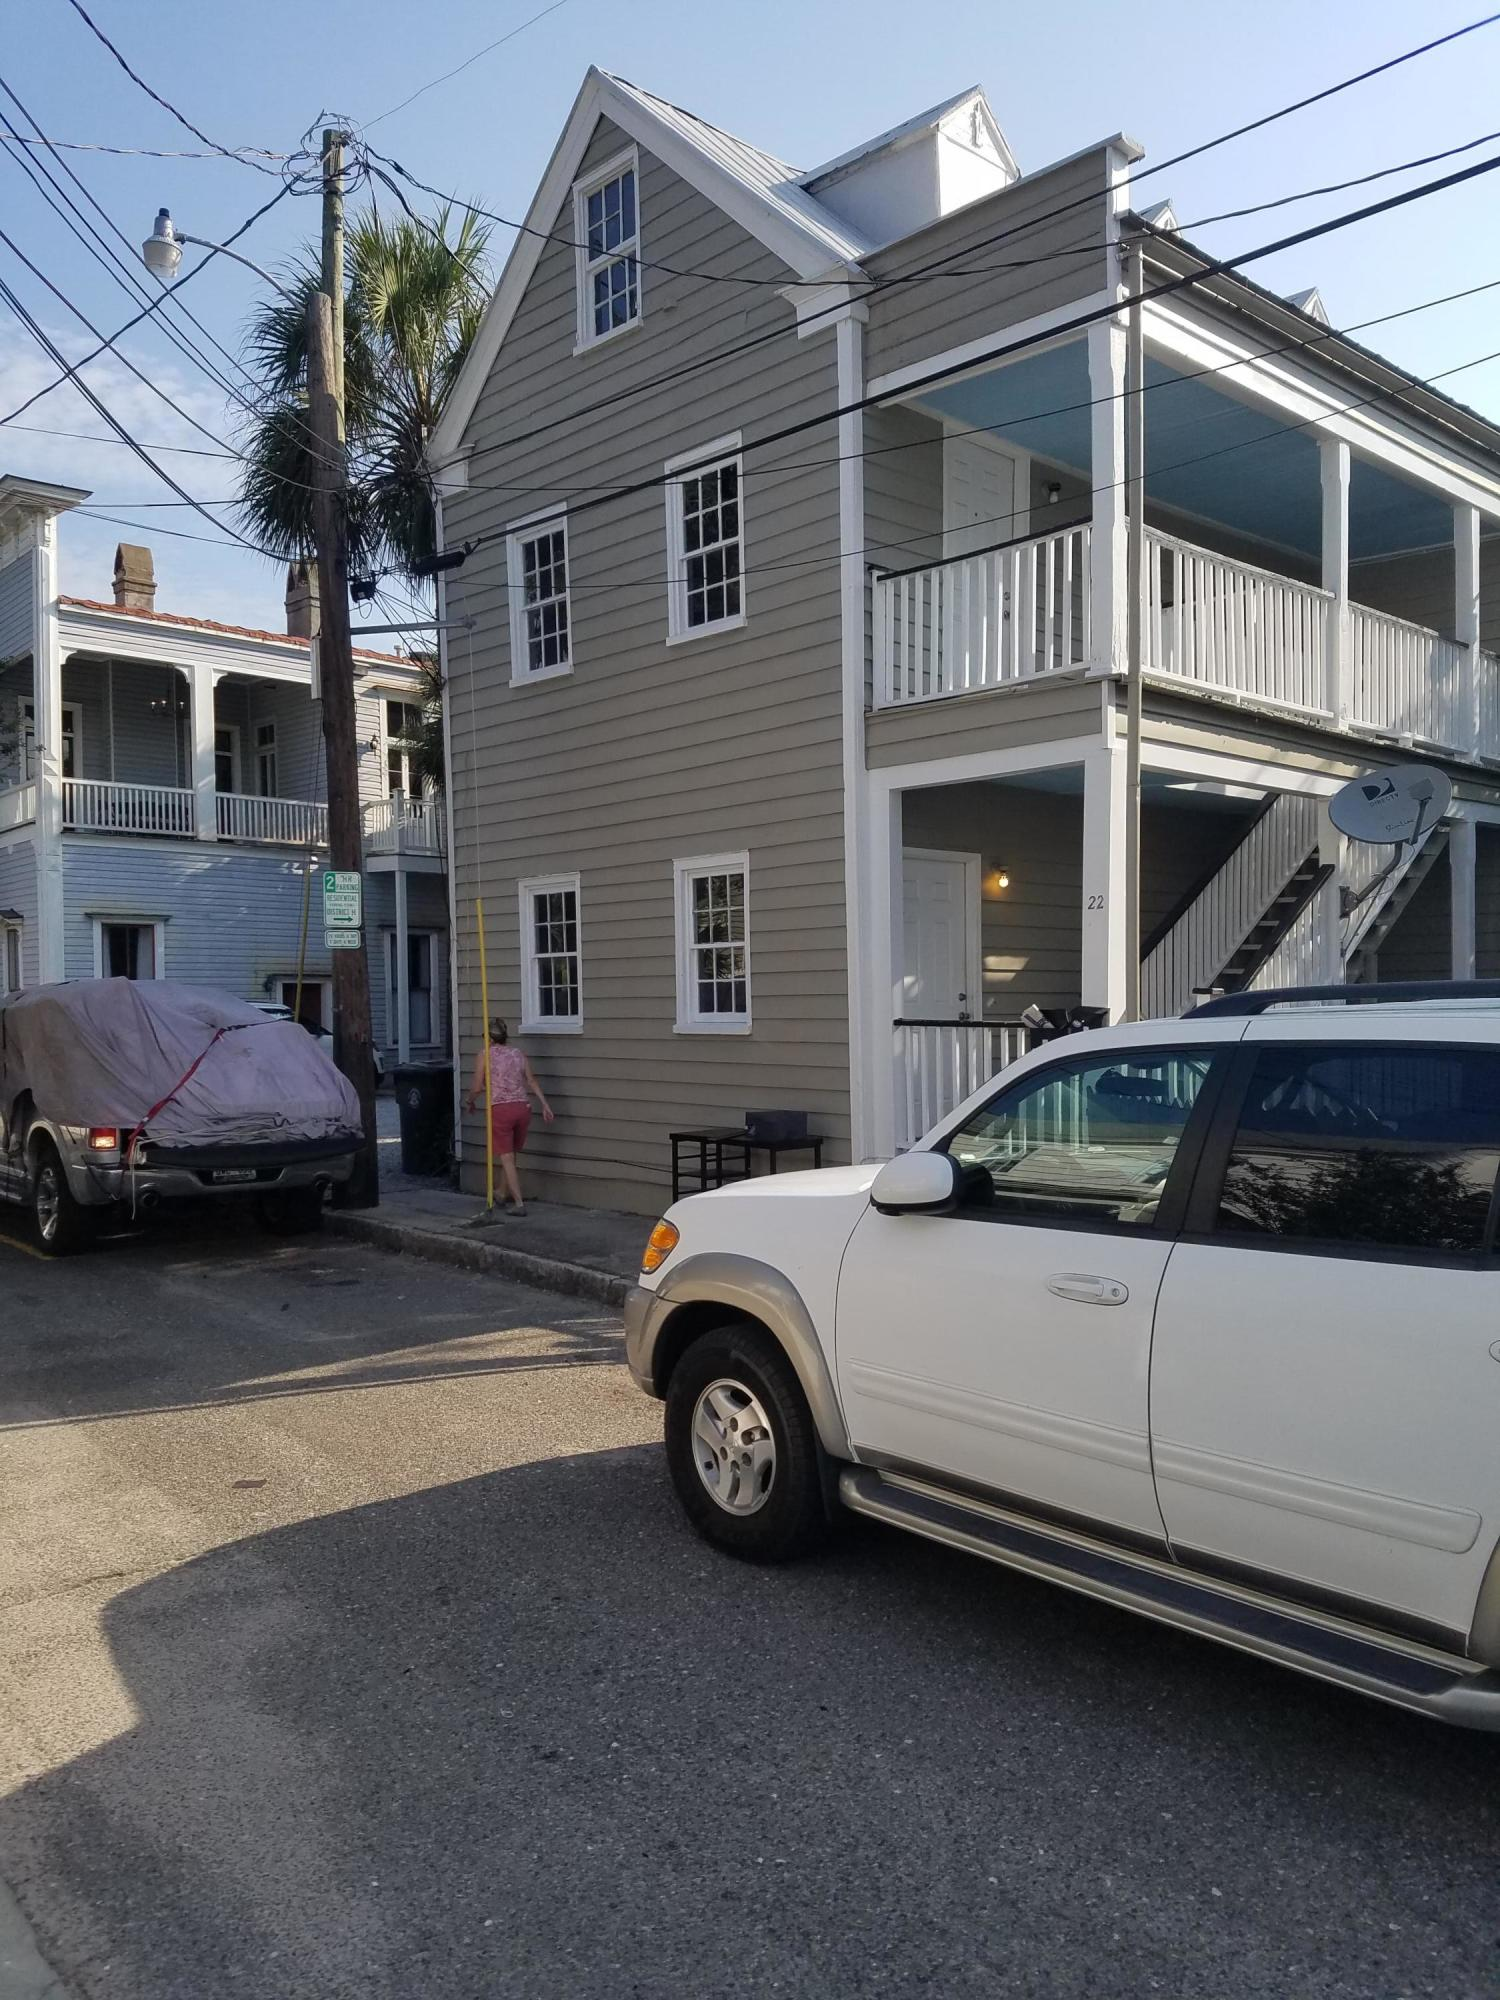 22 Sires Street, Charleston, 29403, ,MultiFamily,For Sale,Sires,21014602